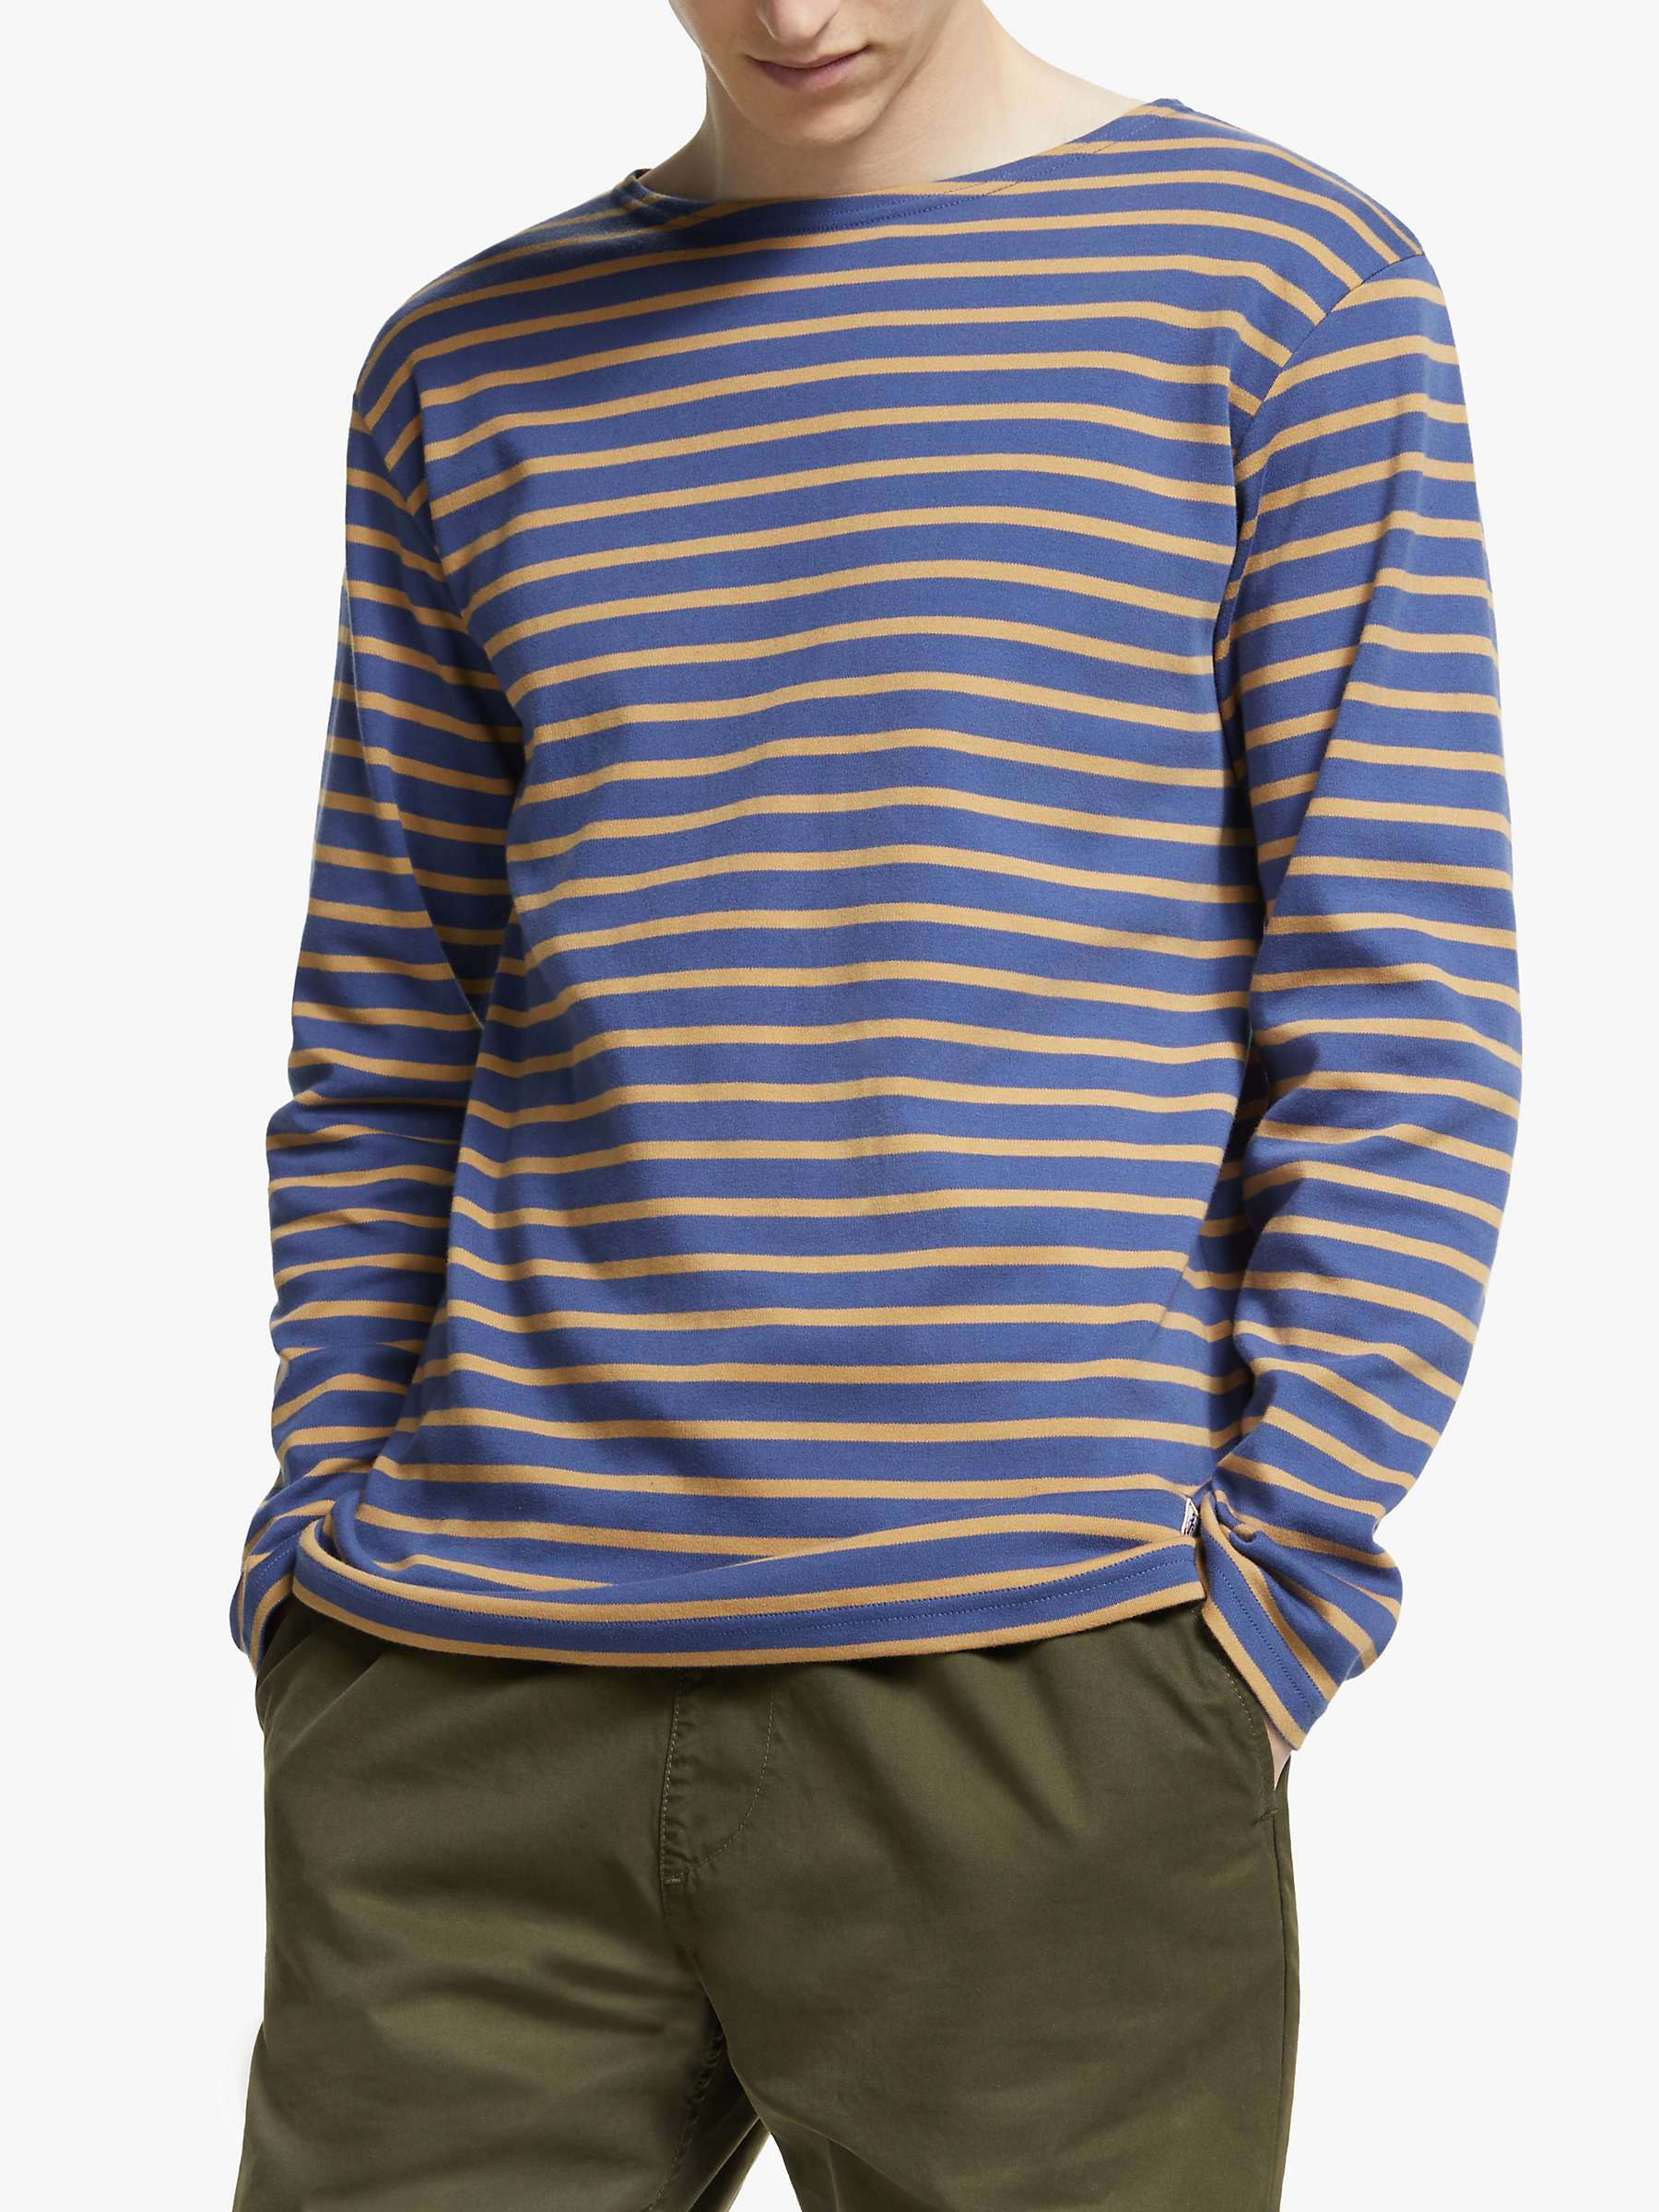 offer discounts great deals price reduced Armor Lux Marinière Houat Héritage Breton Striped Long Sleeve T-Shirt,  Ink/Orange